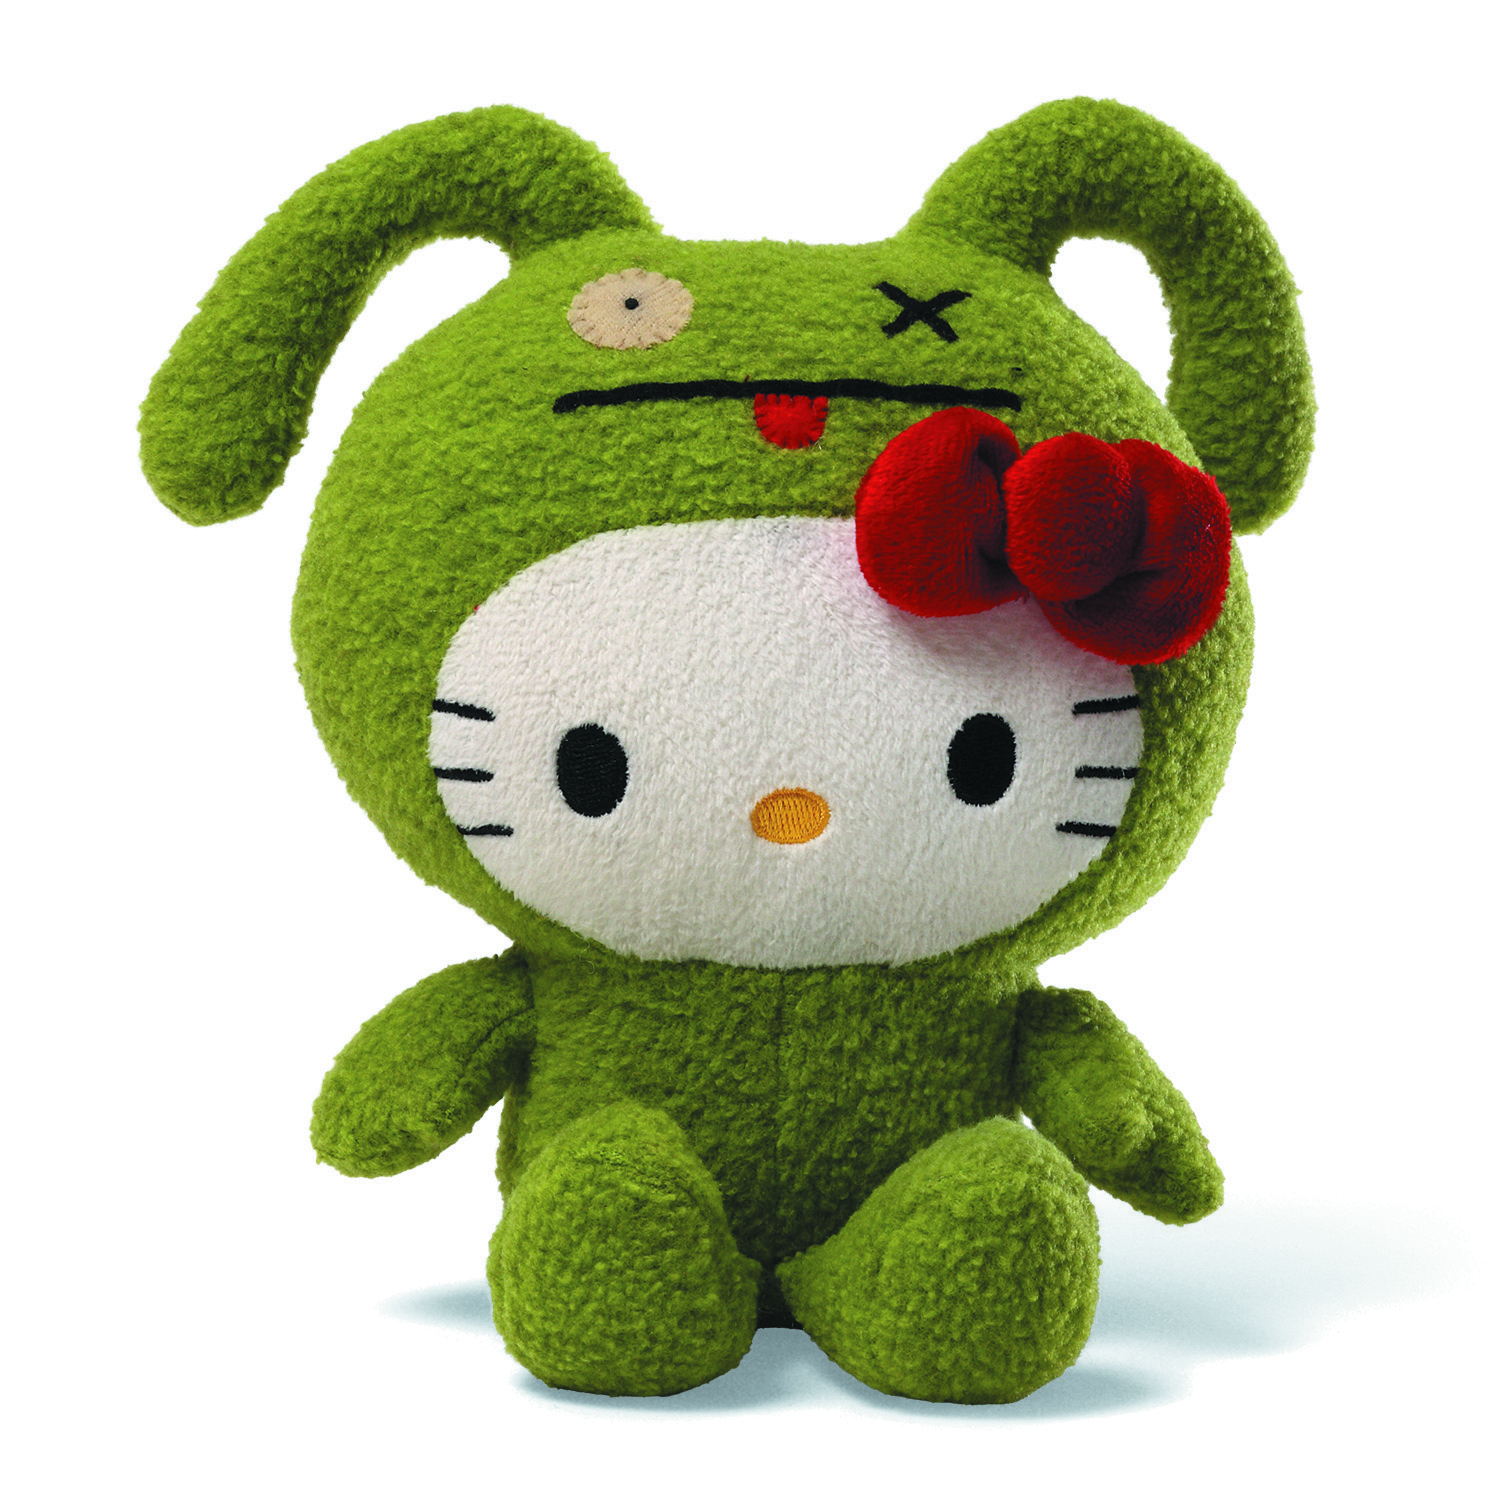 UGLYDOLL HELLO KITTY OX 7IN PLUSH